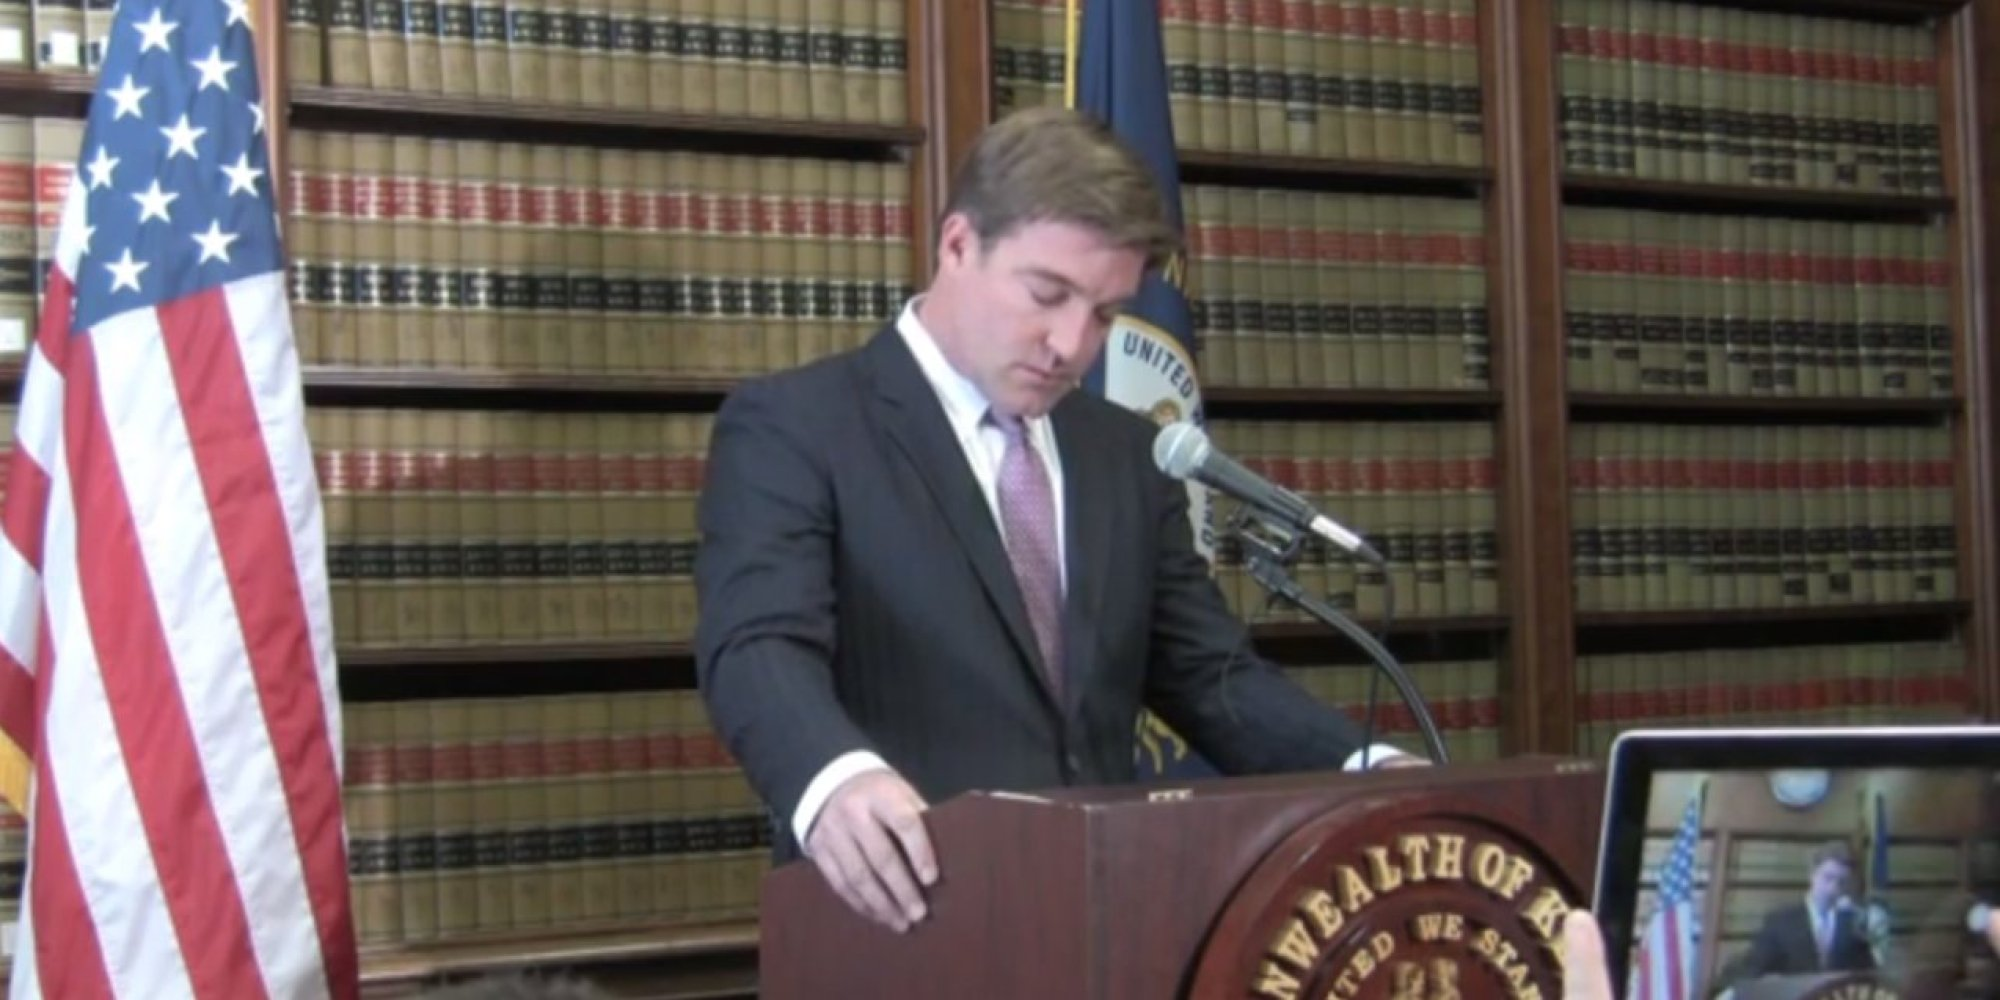 jack conway gay marriage issue